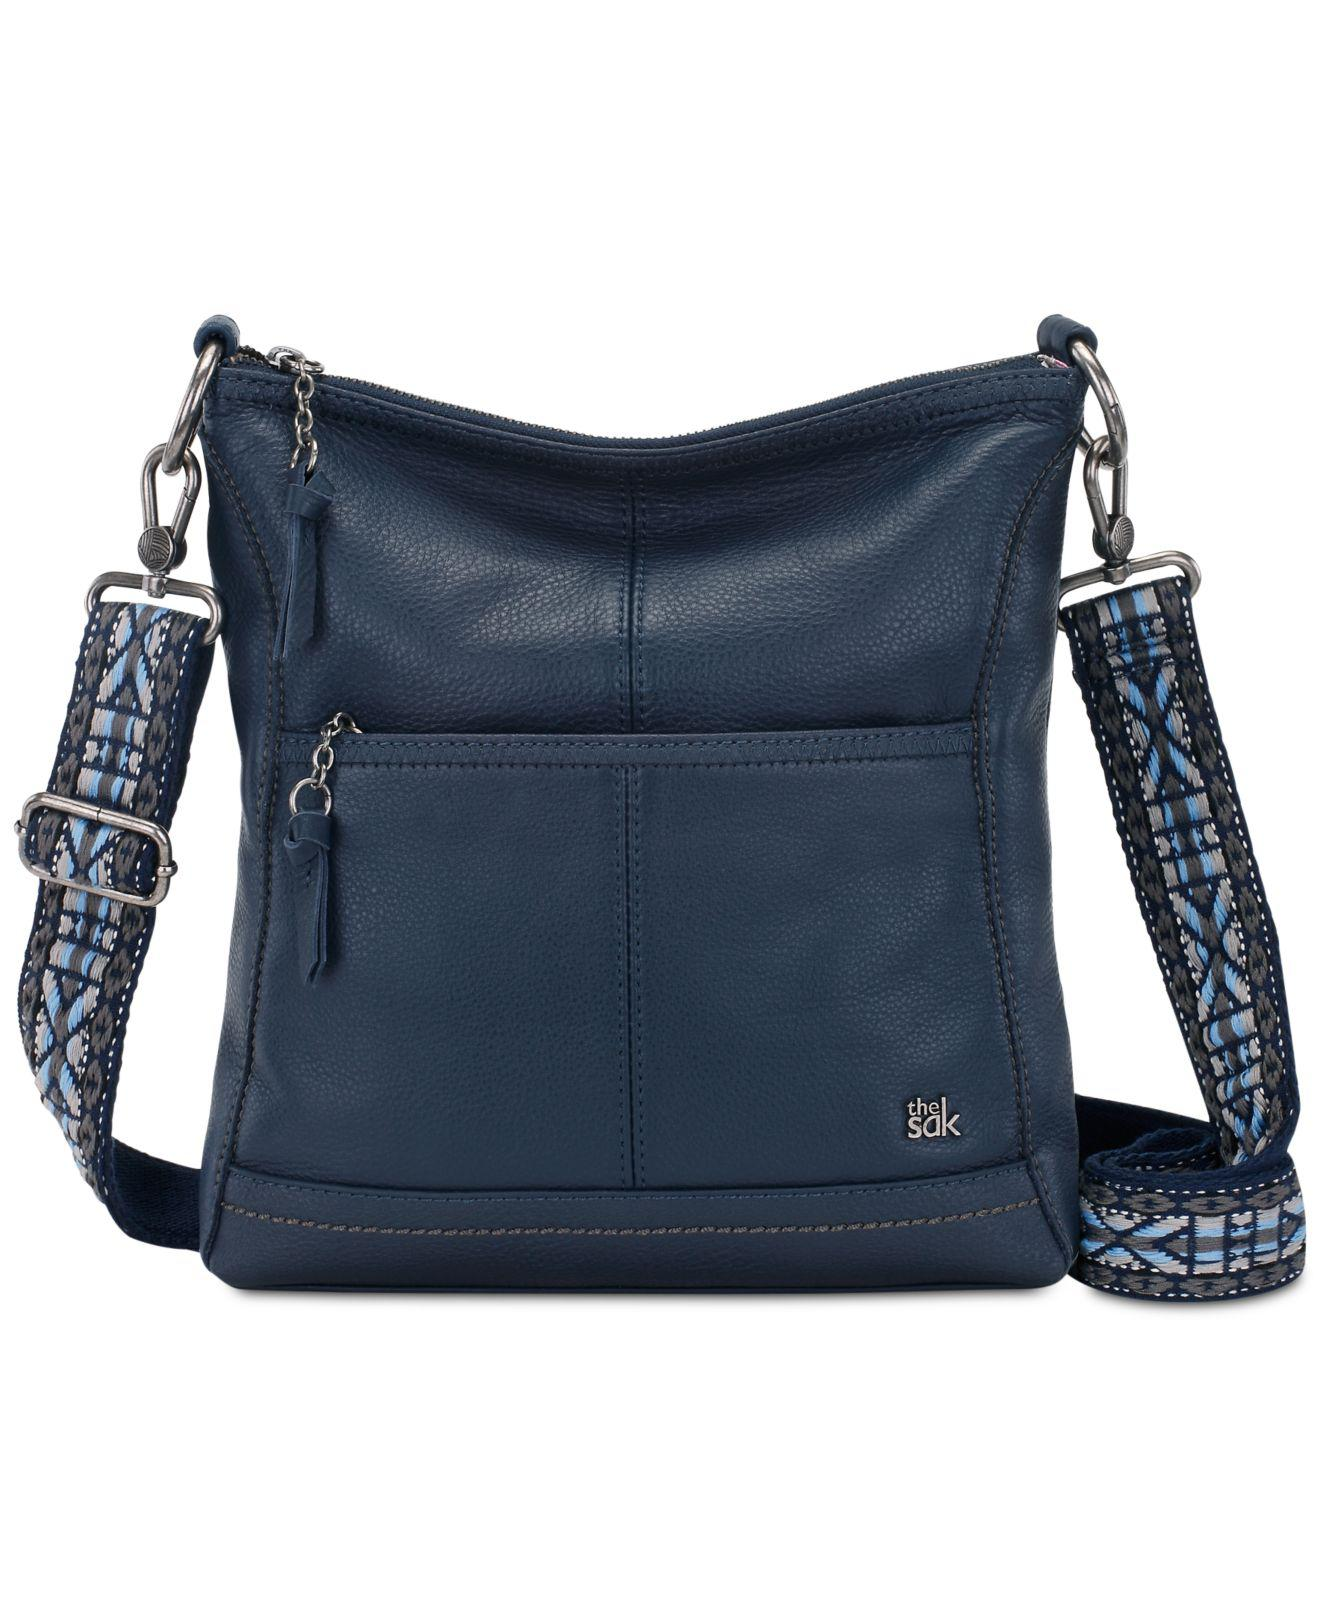 Lyst - The Sak Lucia Leather Crossbody in Blue - Save 20% 3f2bc5e83f5a8